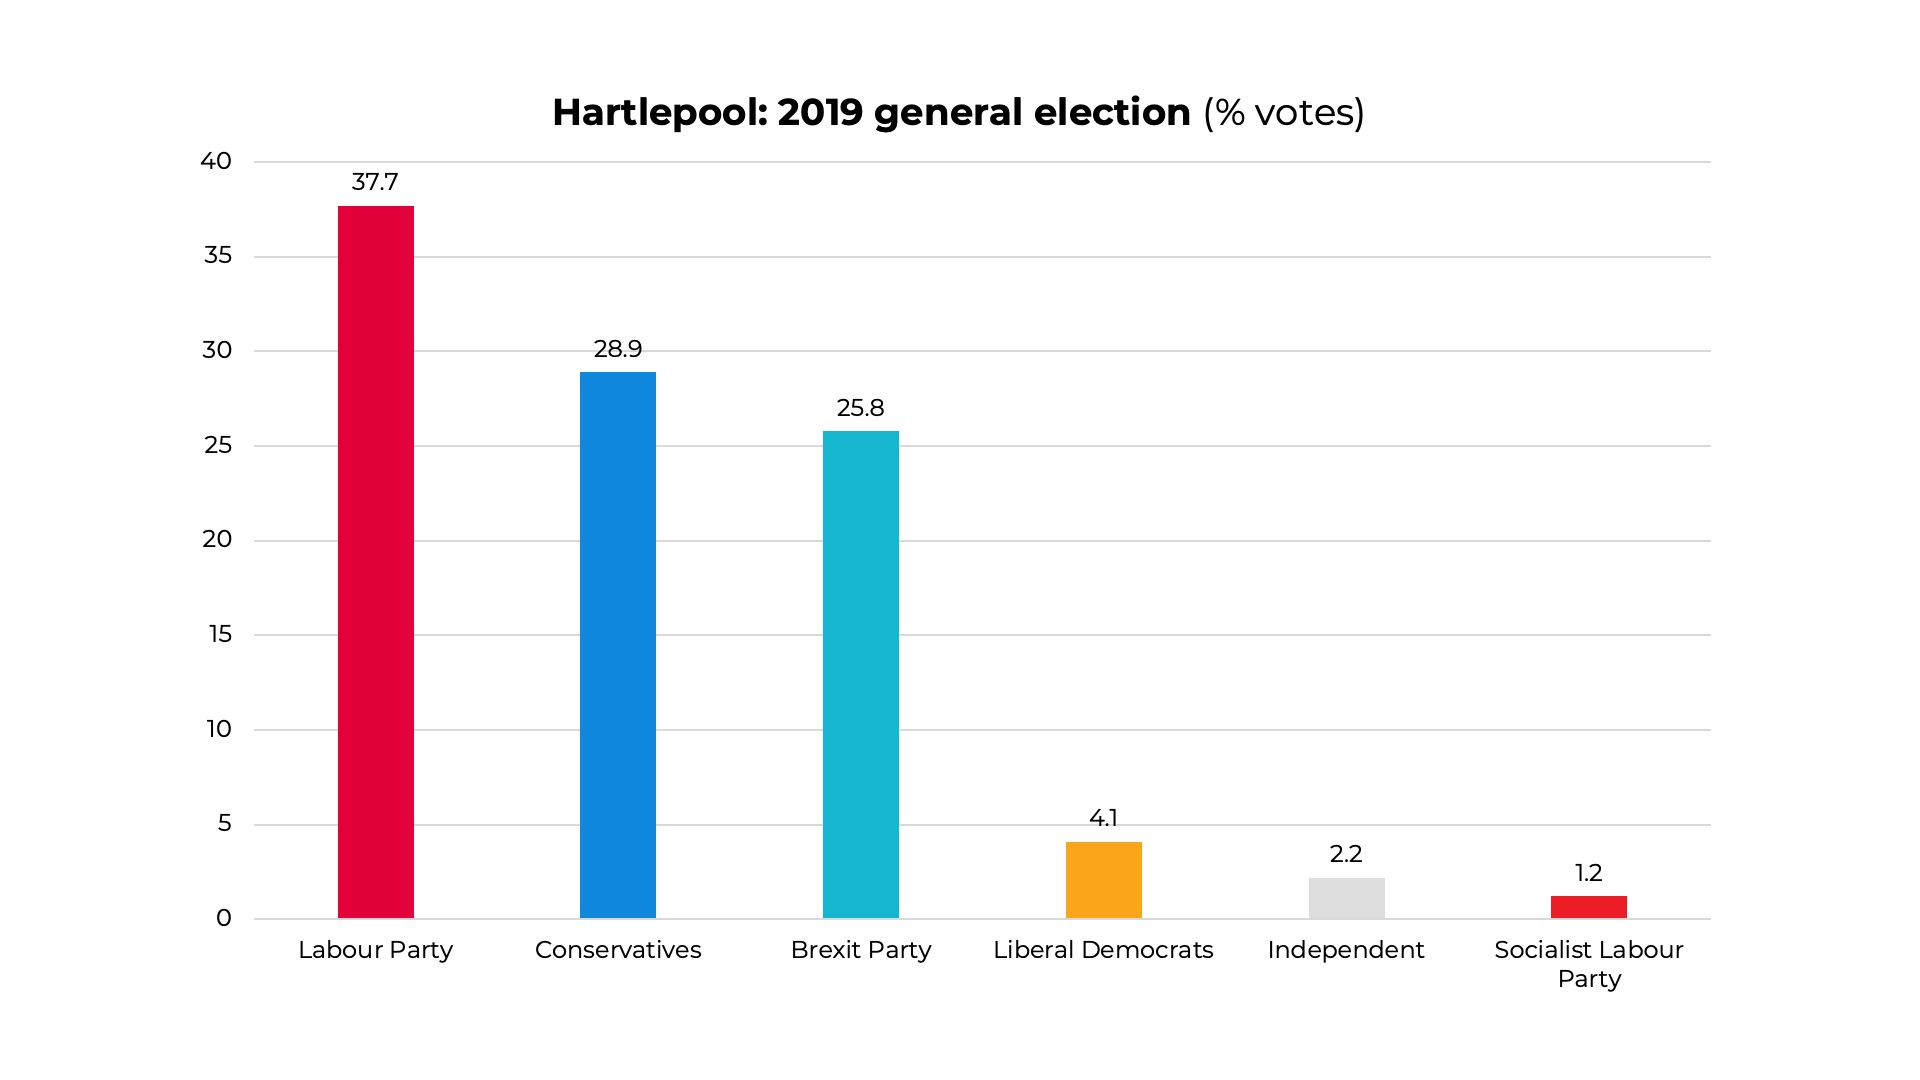 2019 Hartlepool General Election results